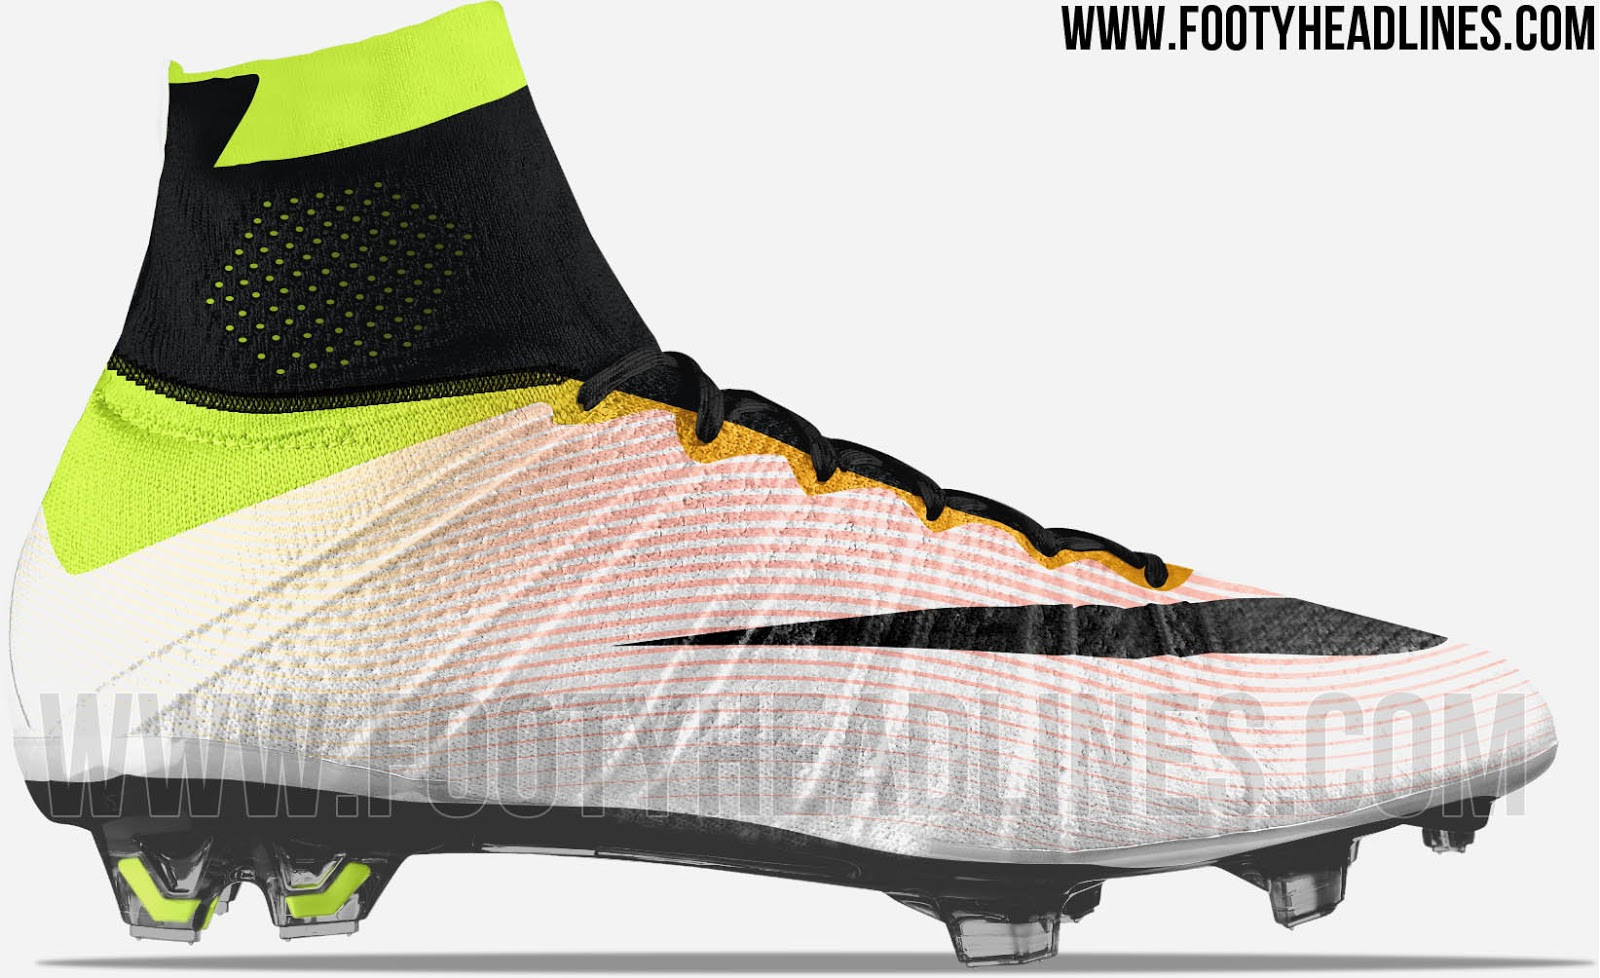 newest 4b9b9 709c4 Unique Nike Mercurial Superfly 2016 Multicolor Boots Leaked ...